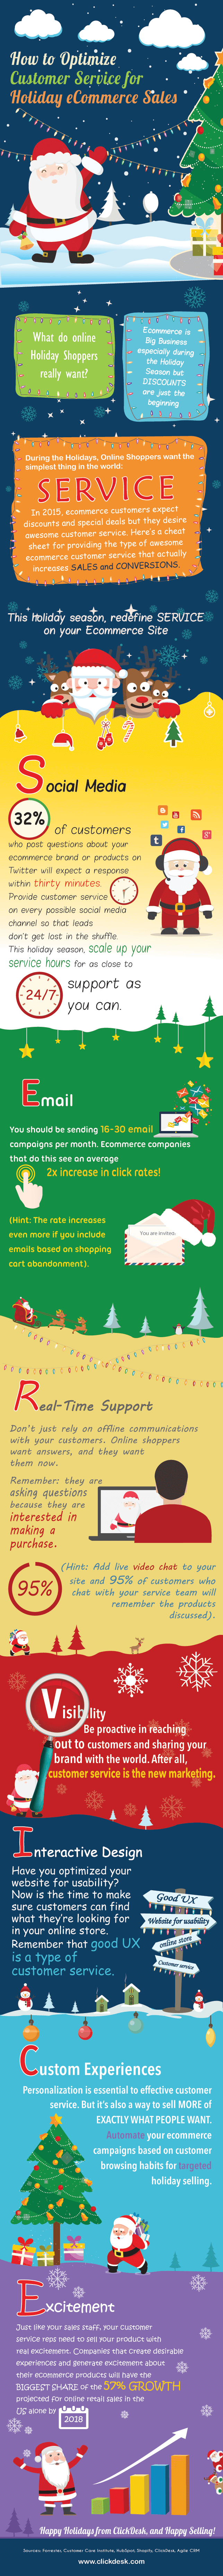 How to Increase Sales in the Holiday Season?